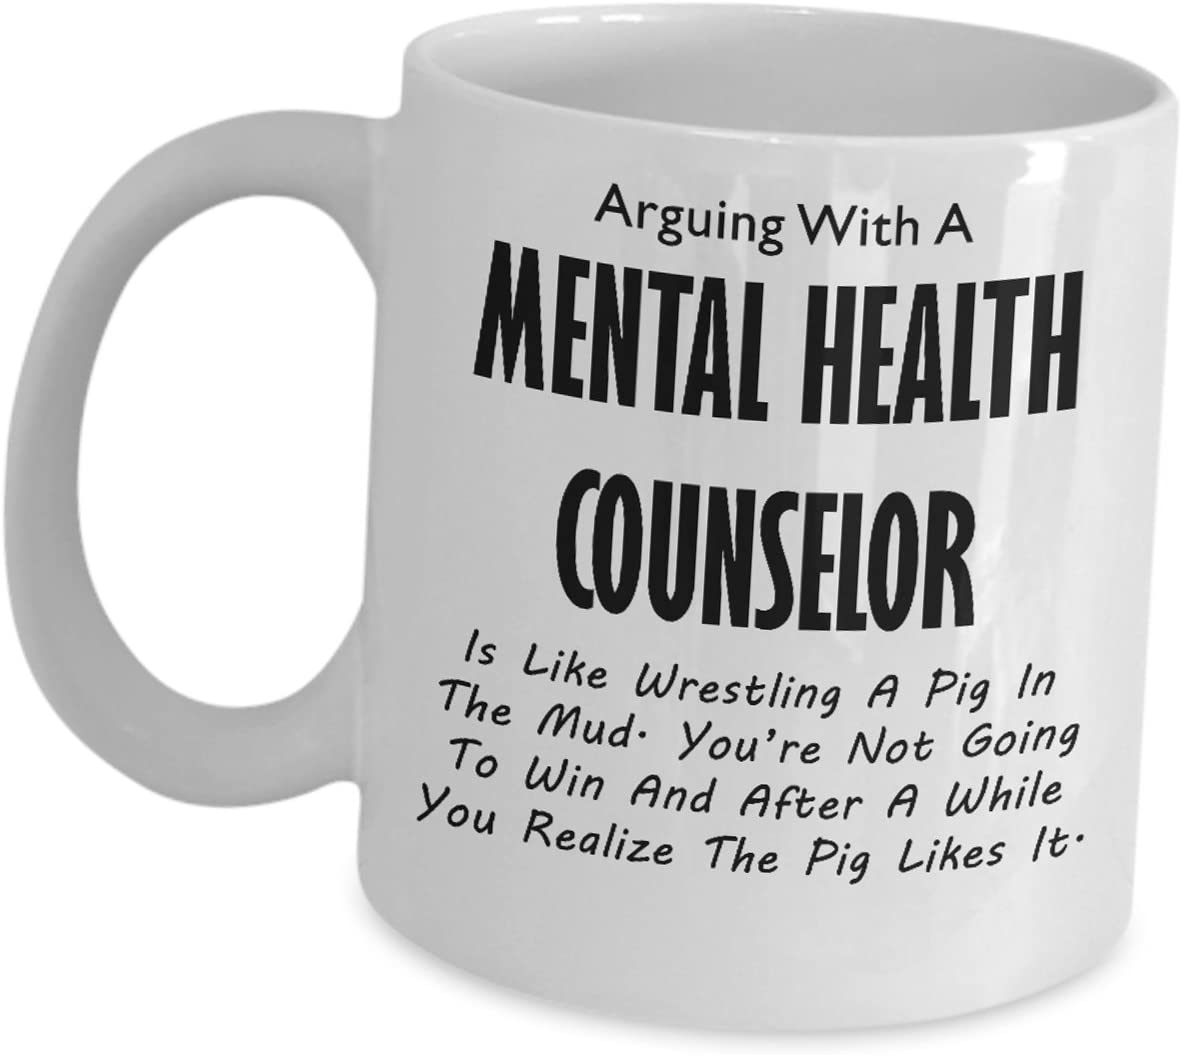 Gift For Him School Gift Therapy Gift Counselor Gift Gift For Her Travel Mug Grad Therapist Mug Therapist Gift Funny Therapist Mug